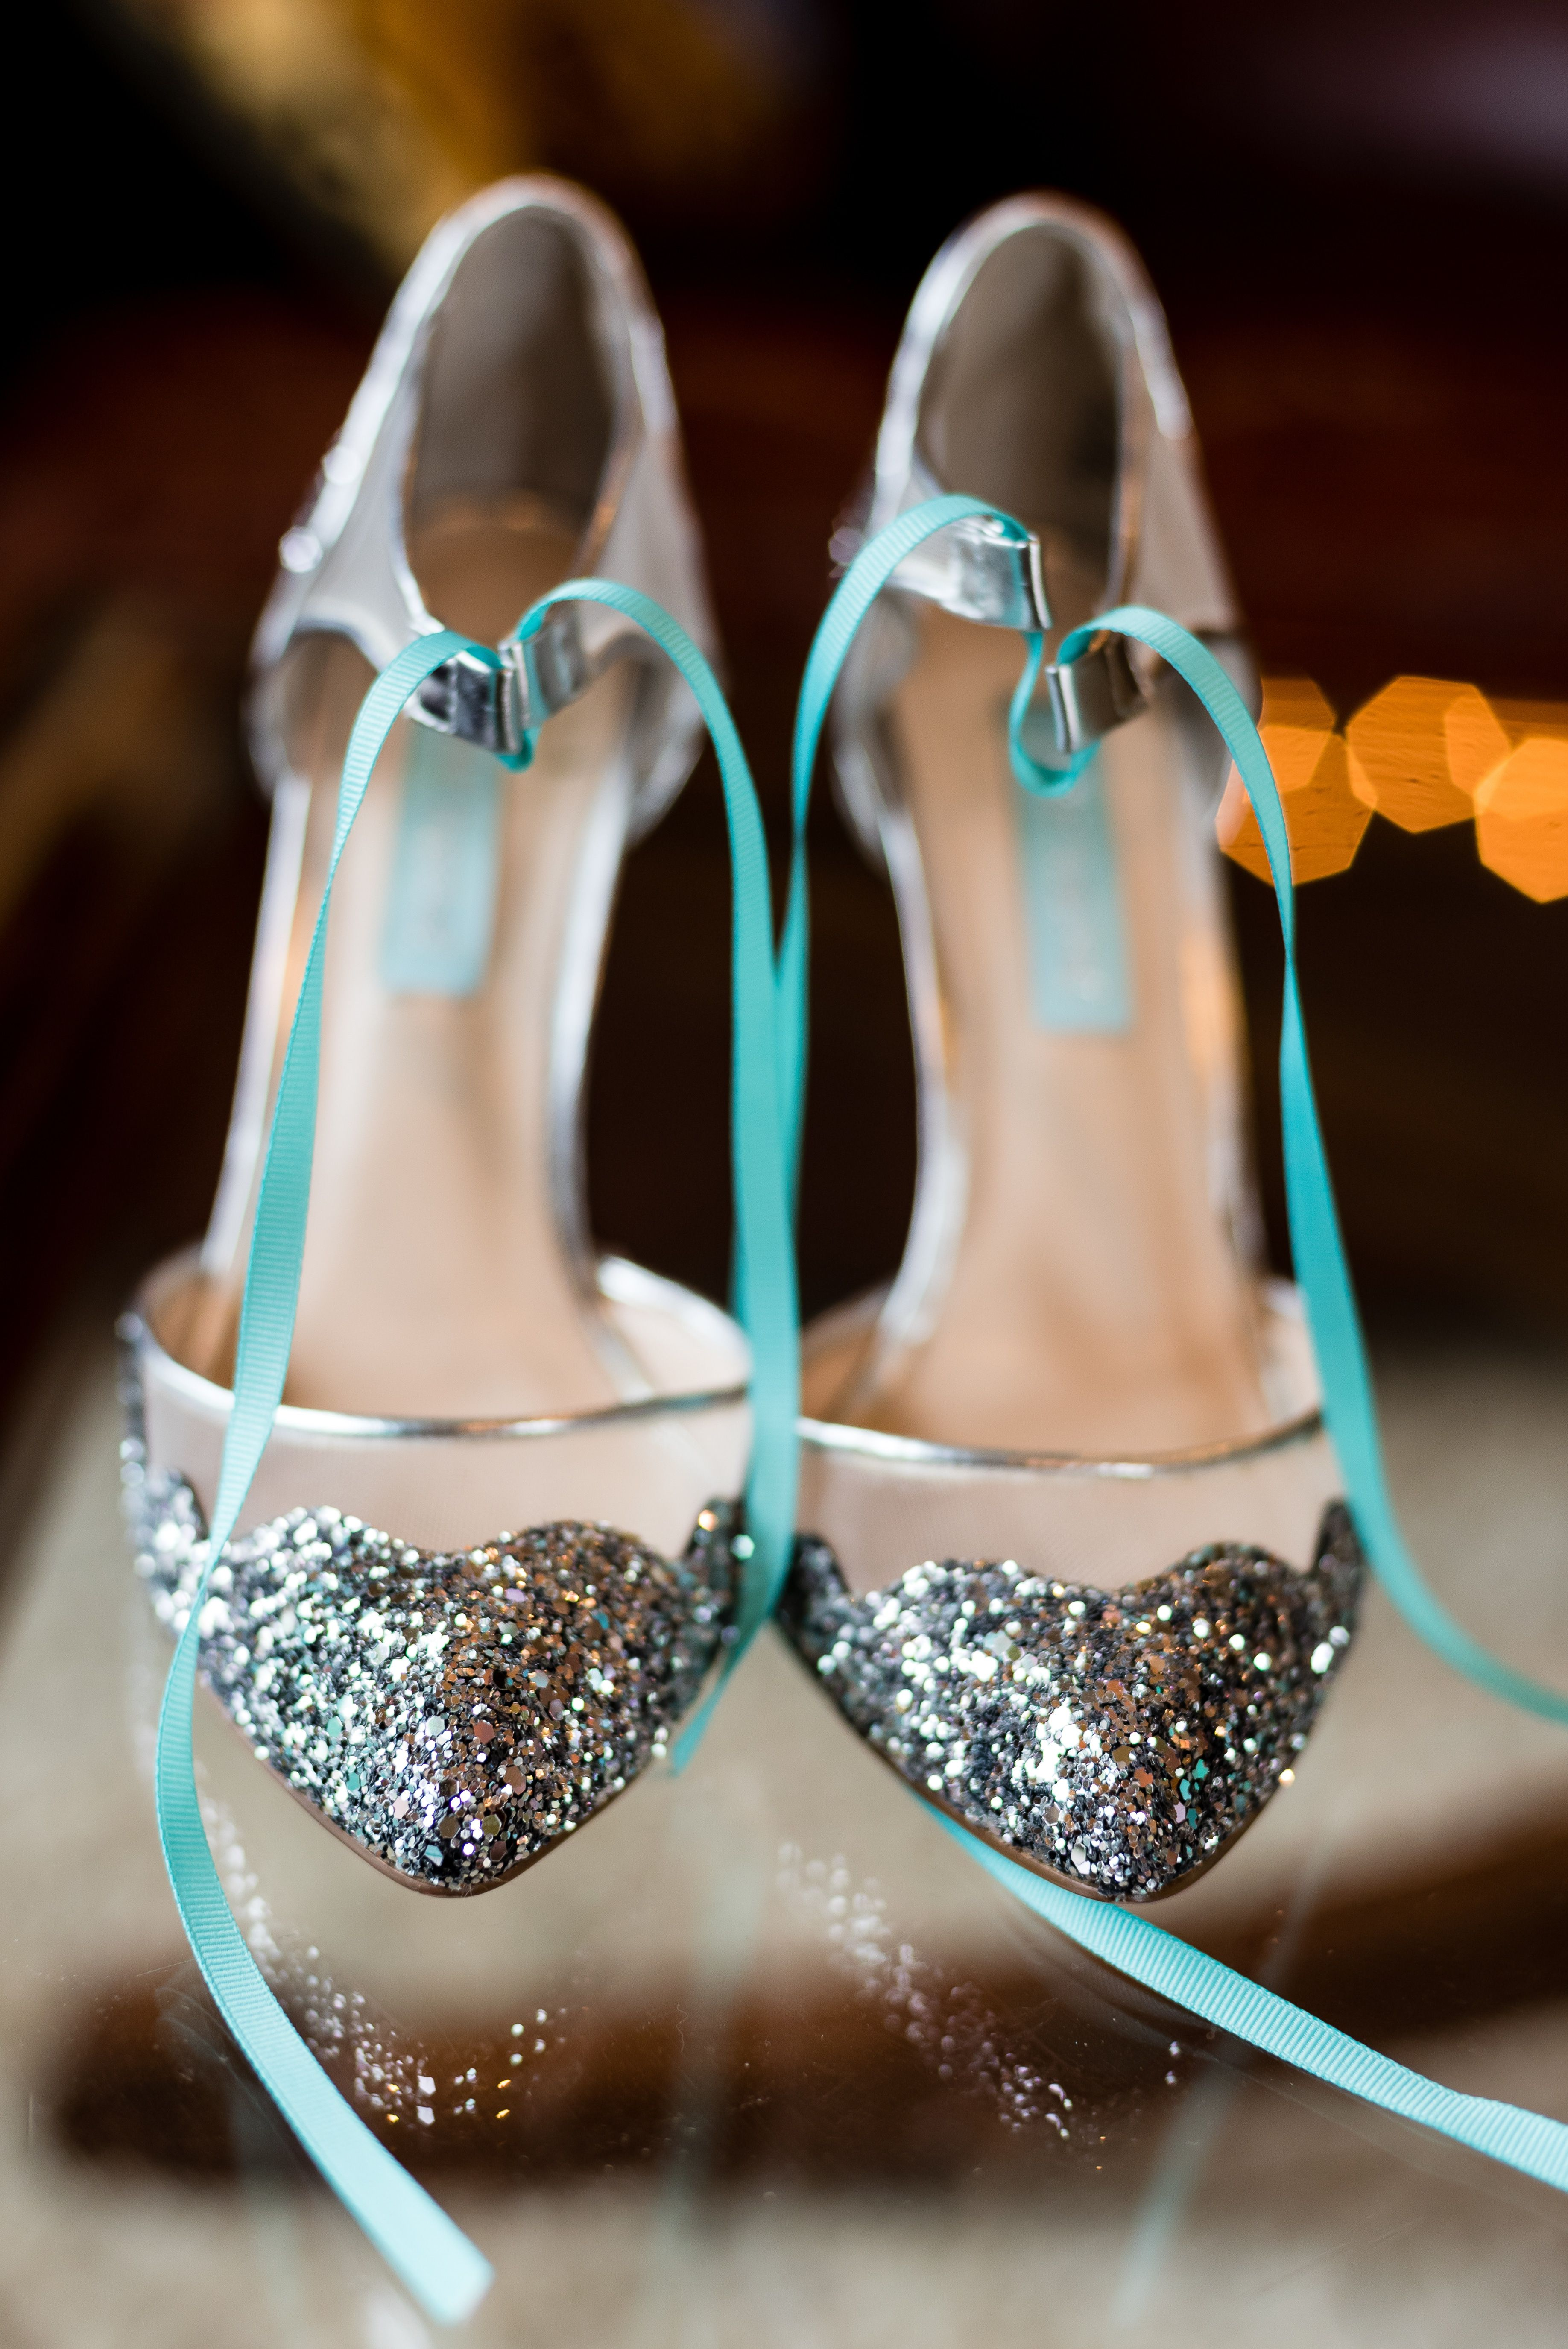 ff5c64baddff 10 Times We Fell In Love With Wedding Shoes - Rustic Wedding Chic